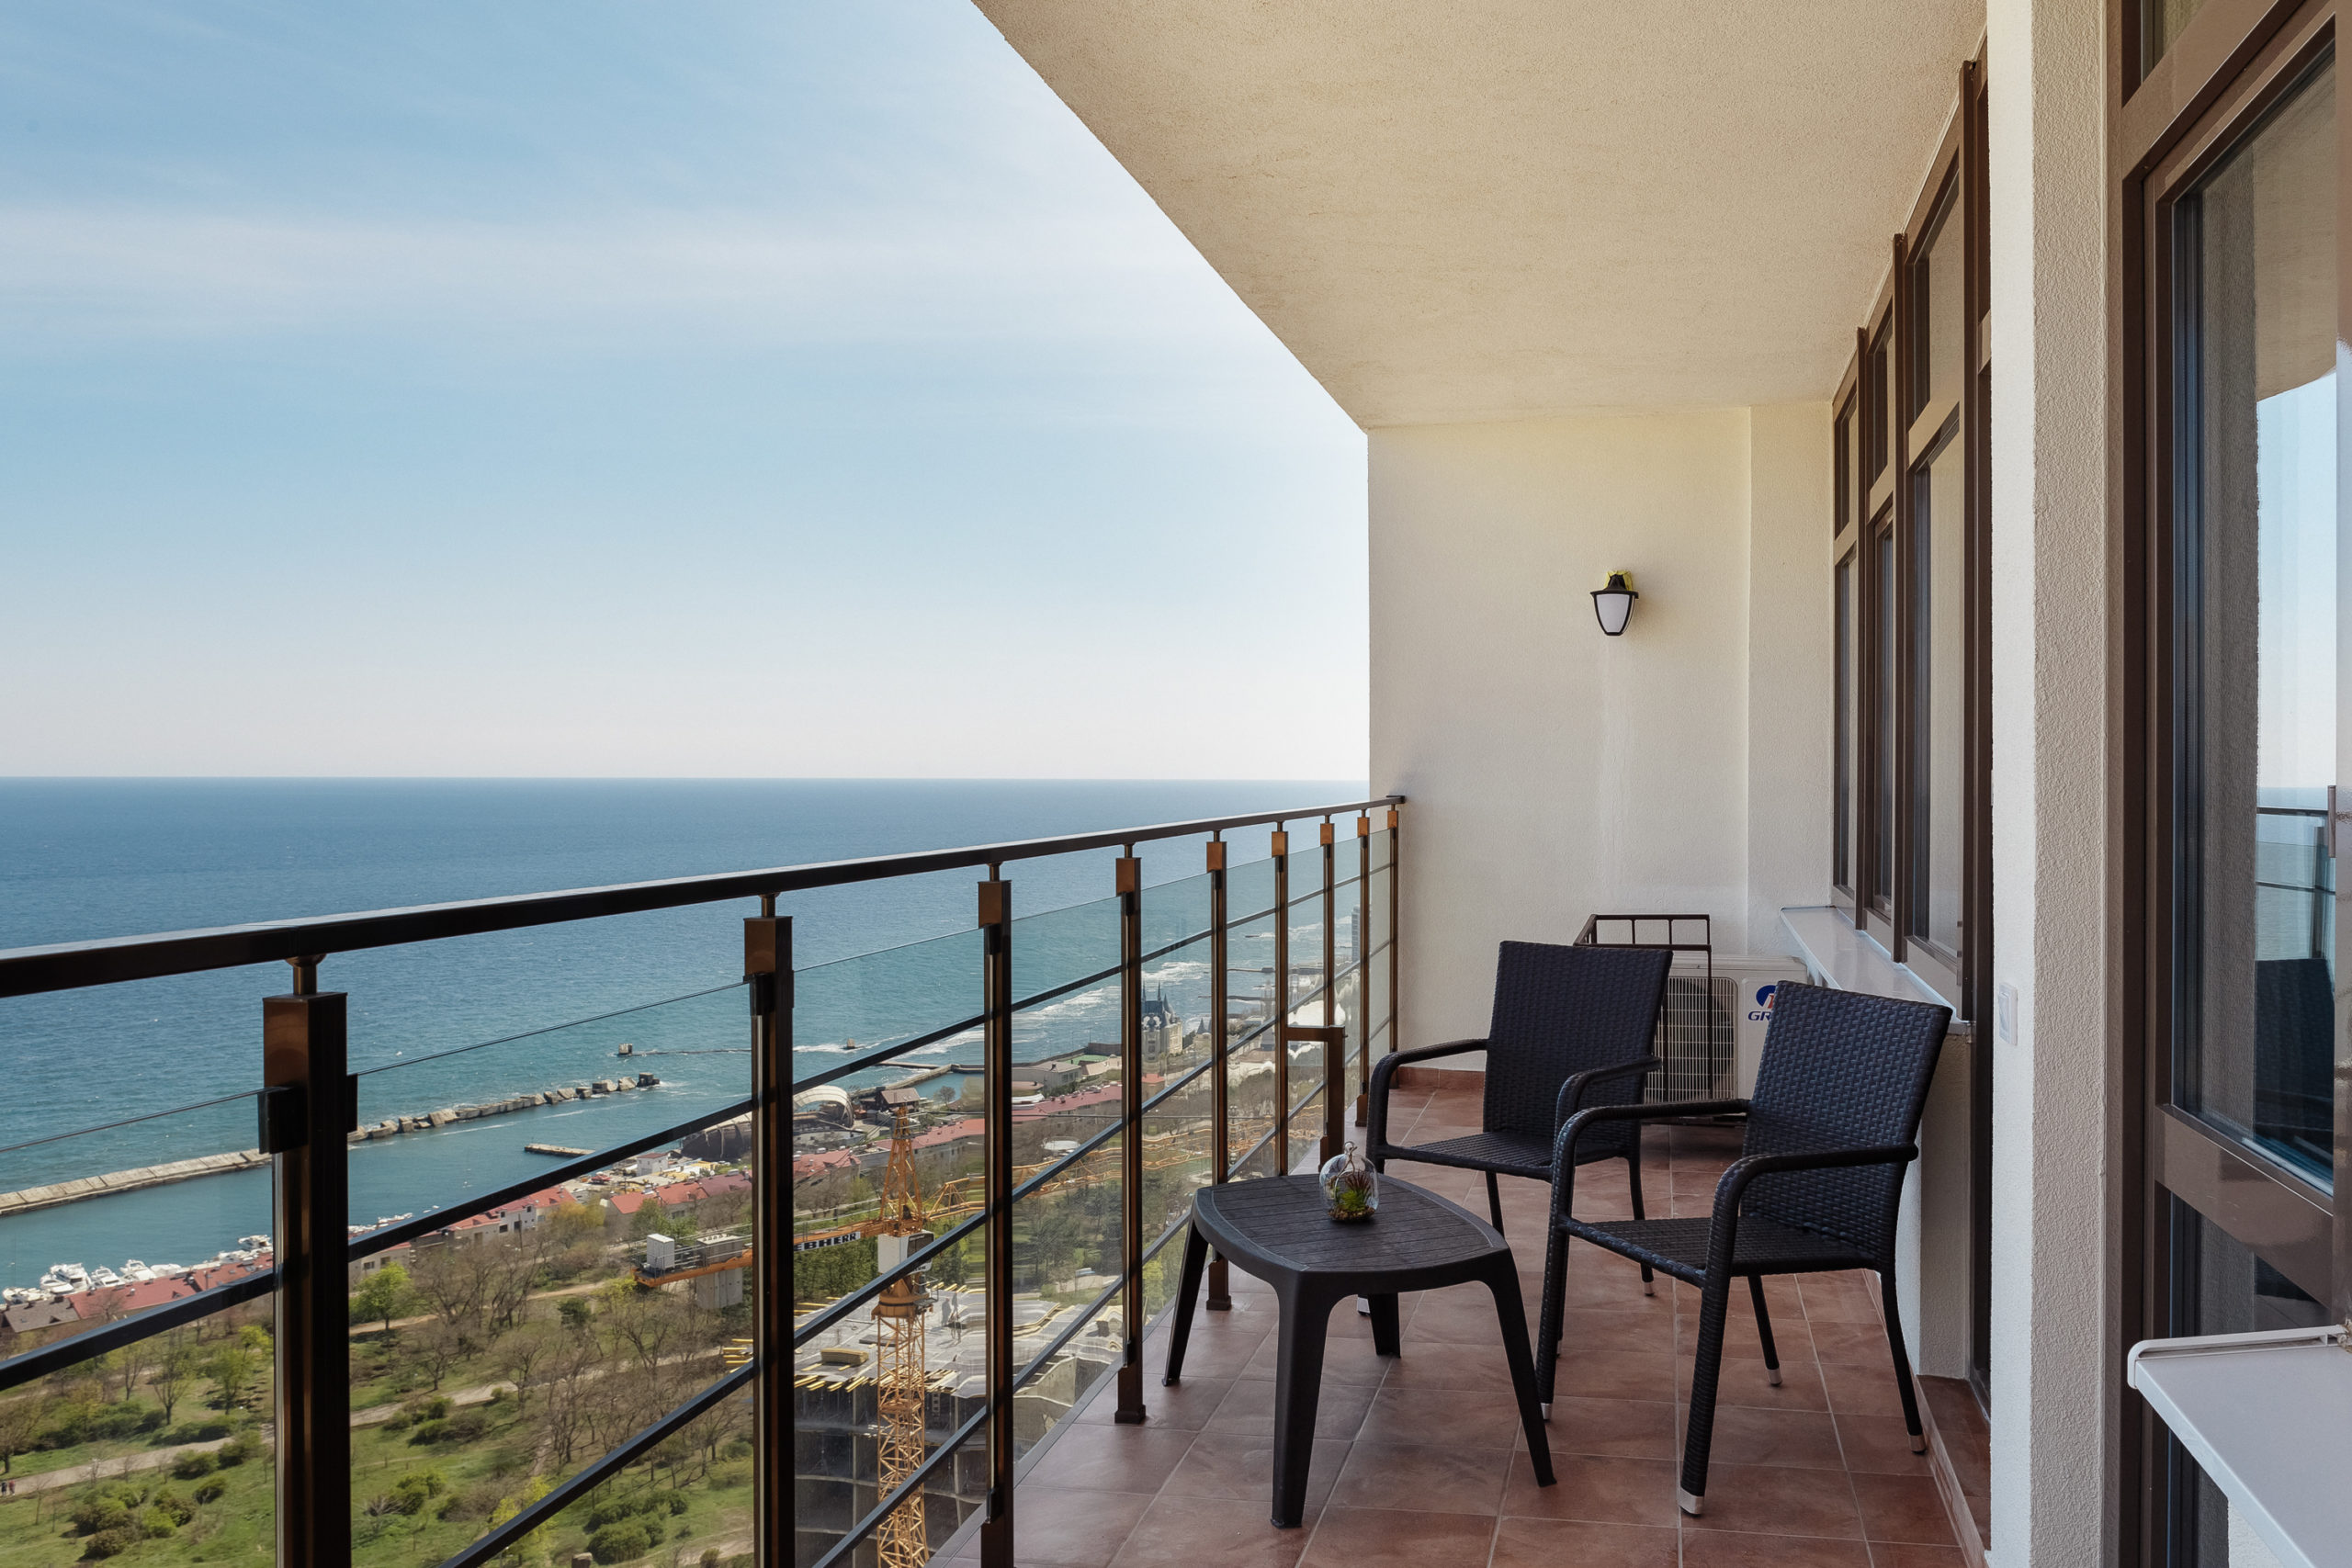 One-bedroom apartment with a sea view and a balcony